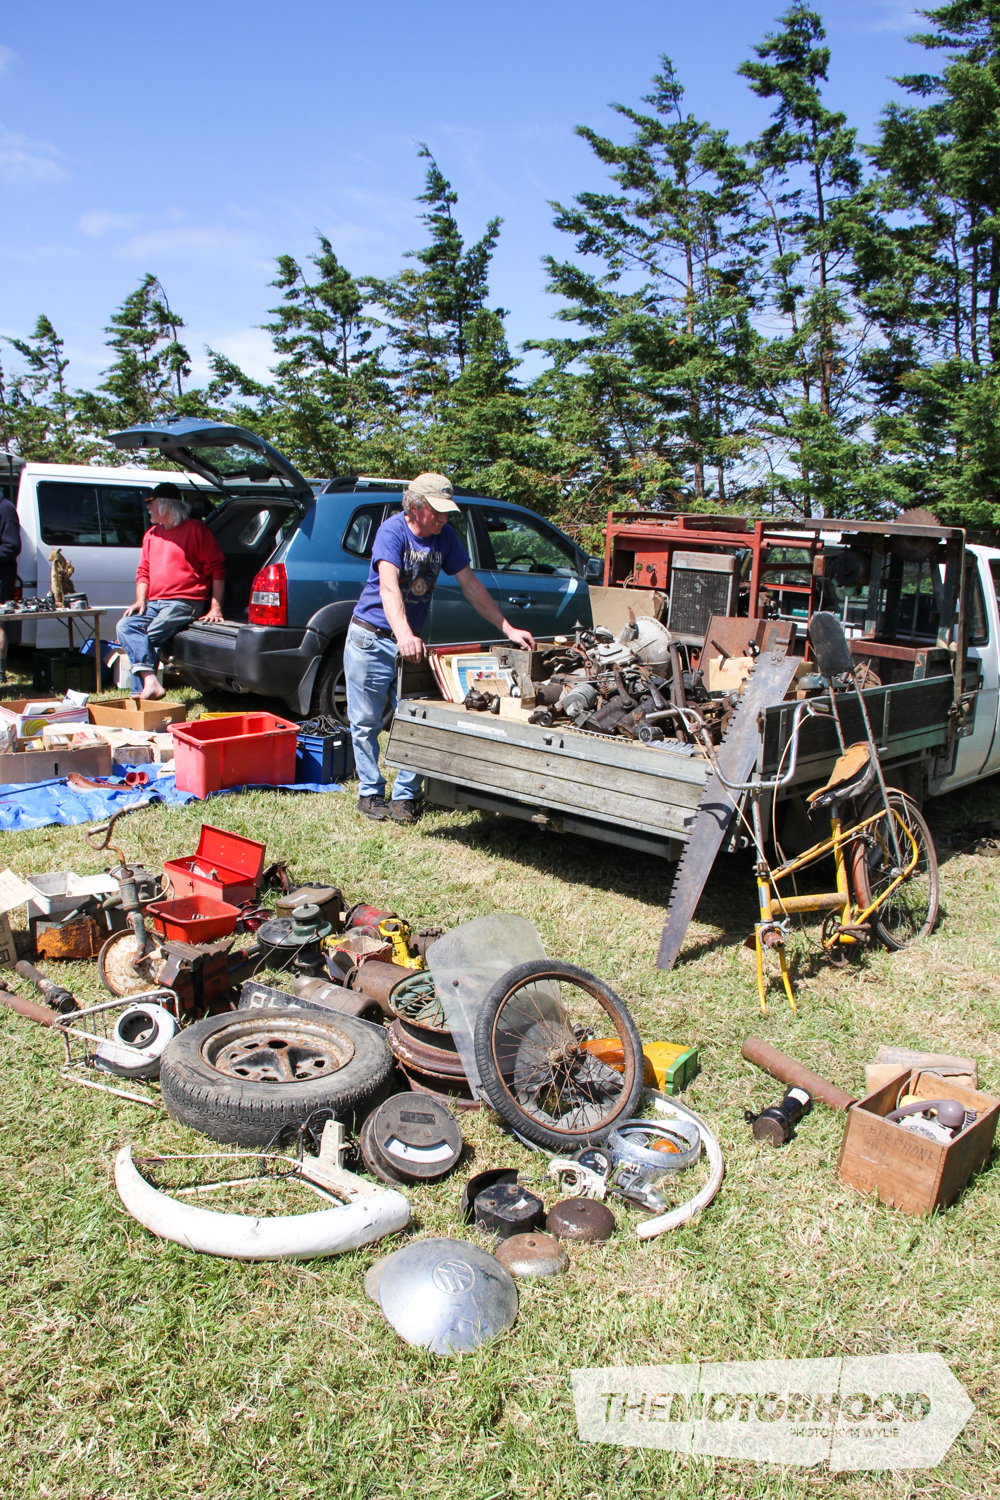 Plenty of old and rare car parts were up for grabs at the swap meet